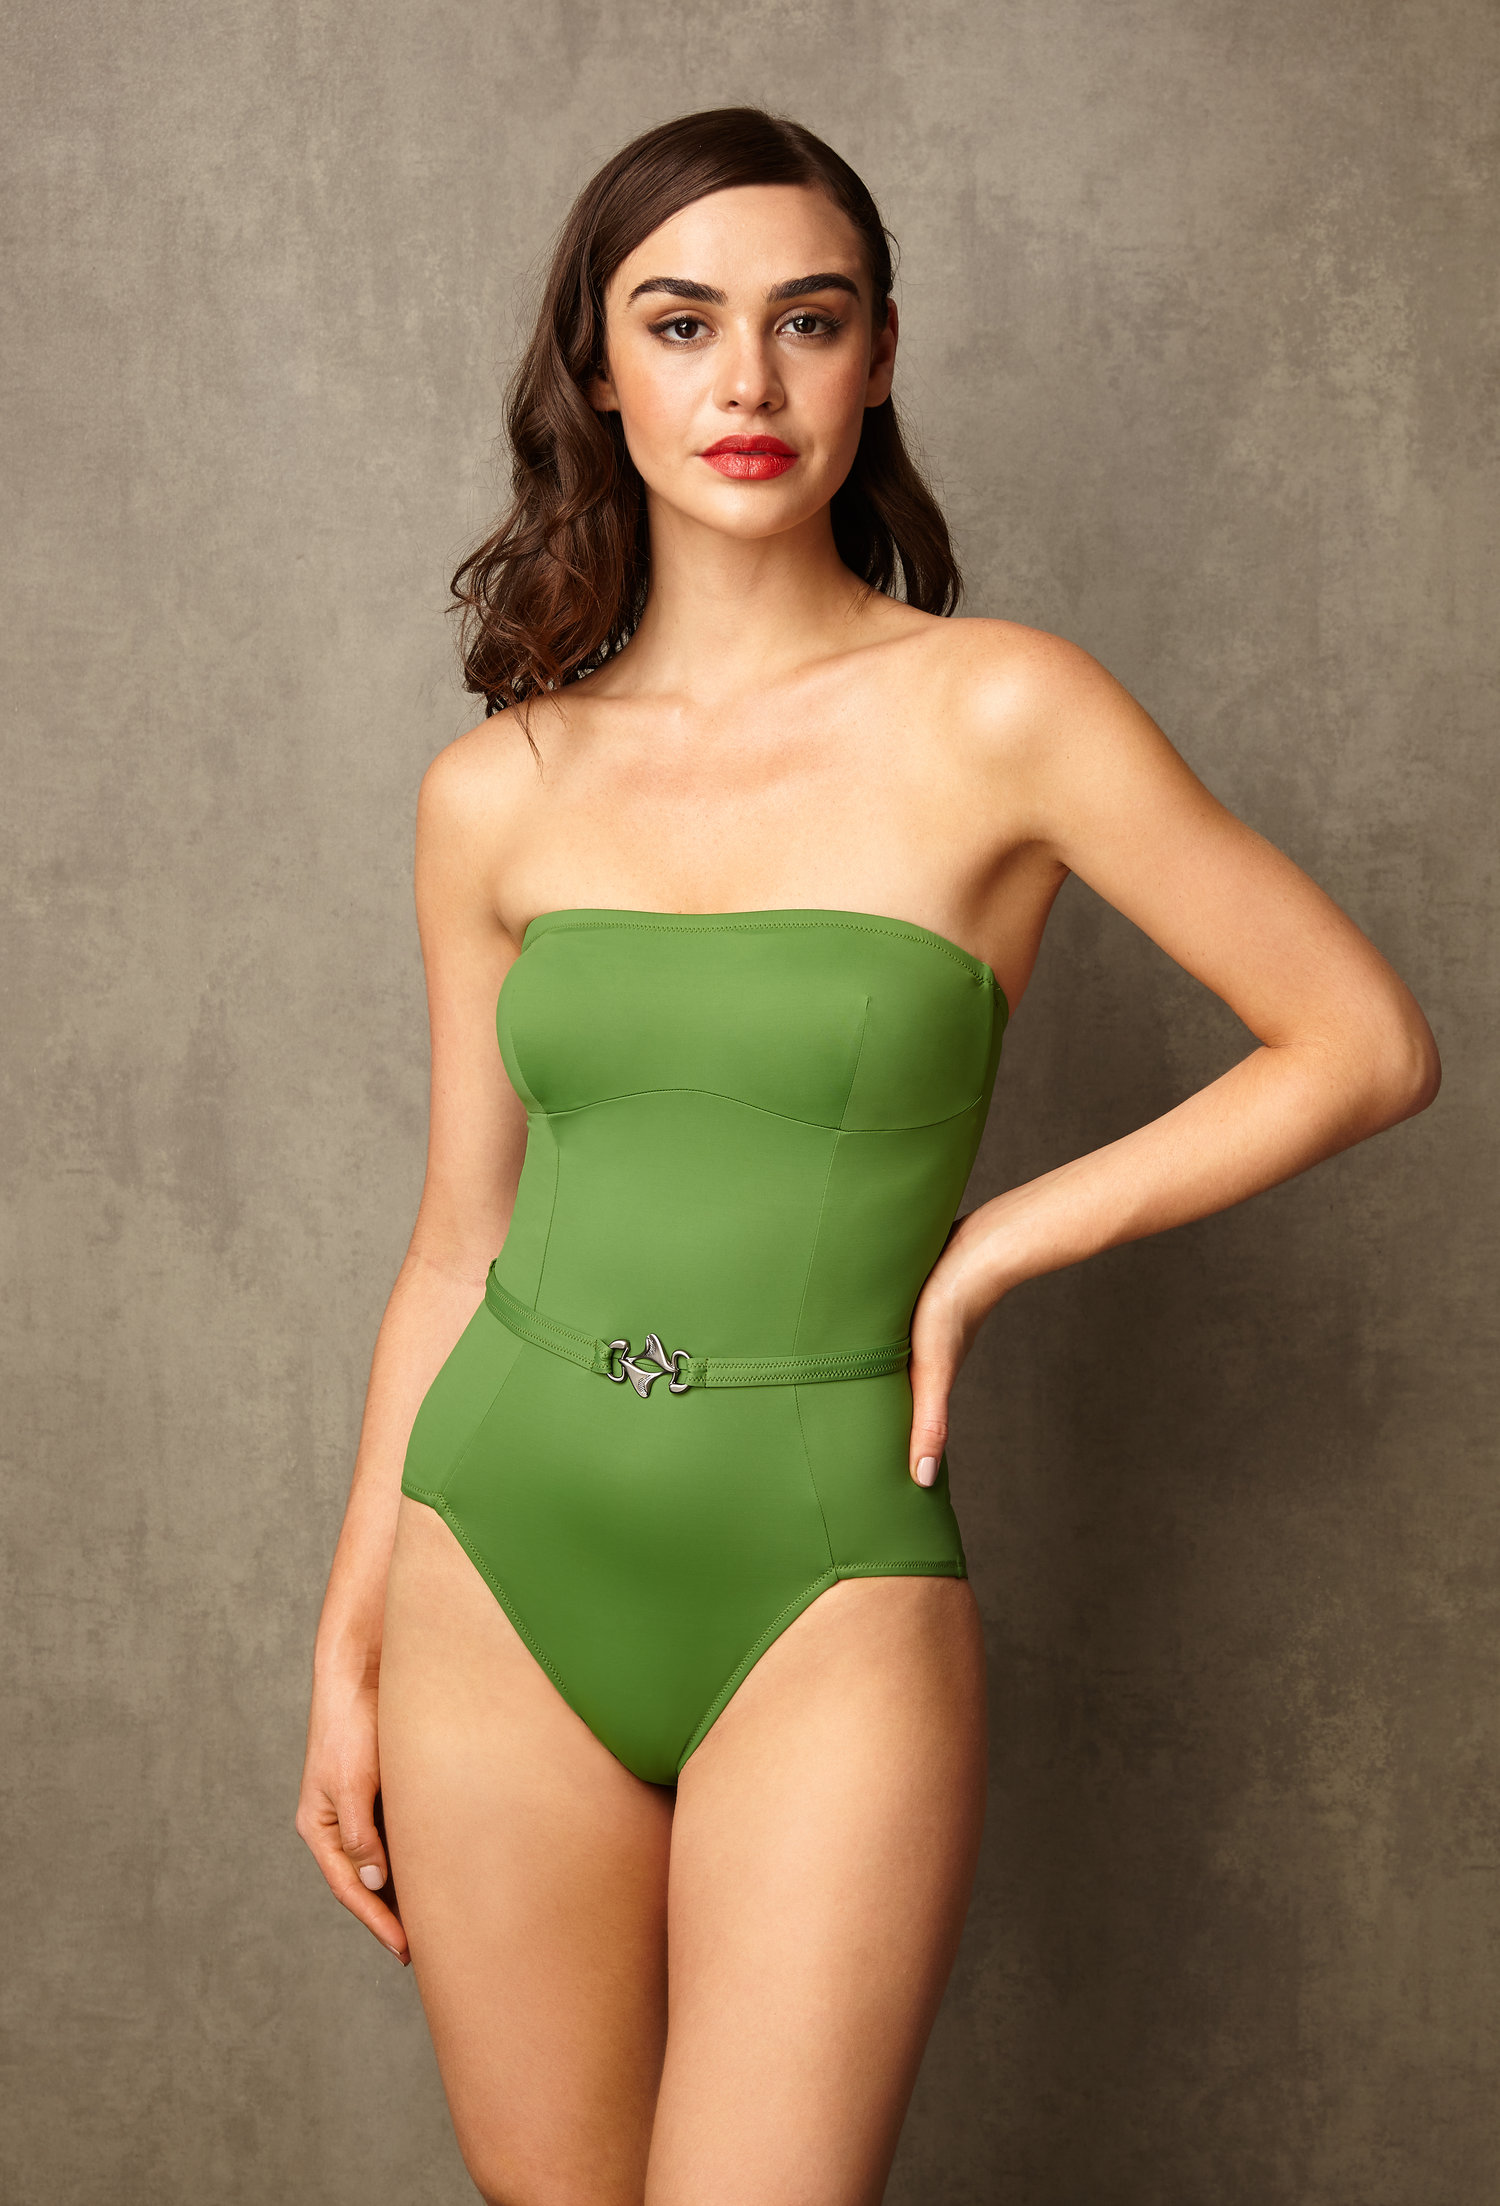 FOXTROT RAINFOREST SWIMSUIT by Ava Verdú on curated-crowd.com